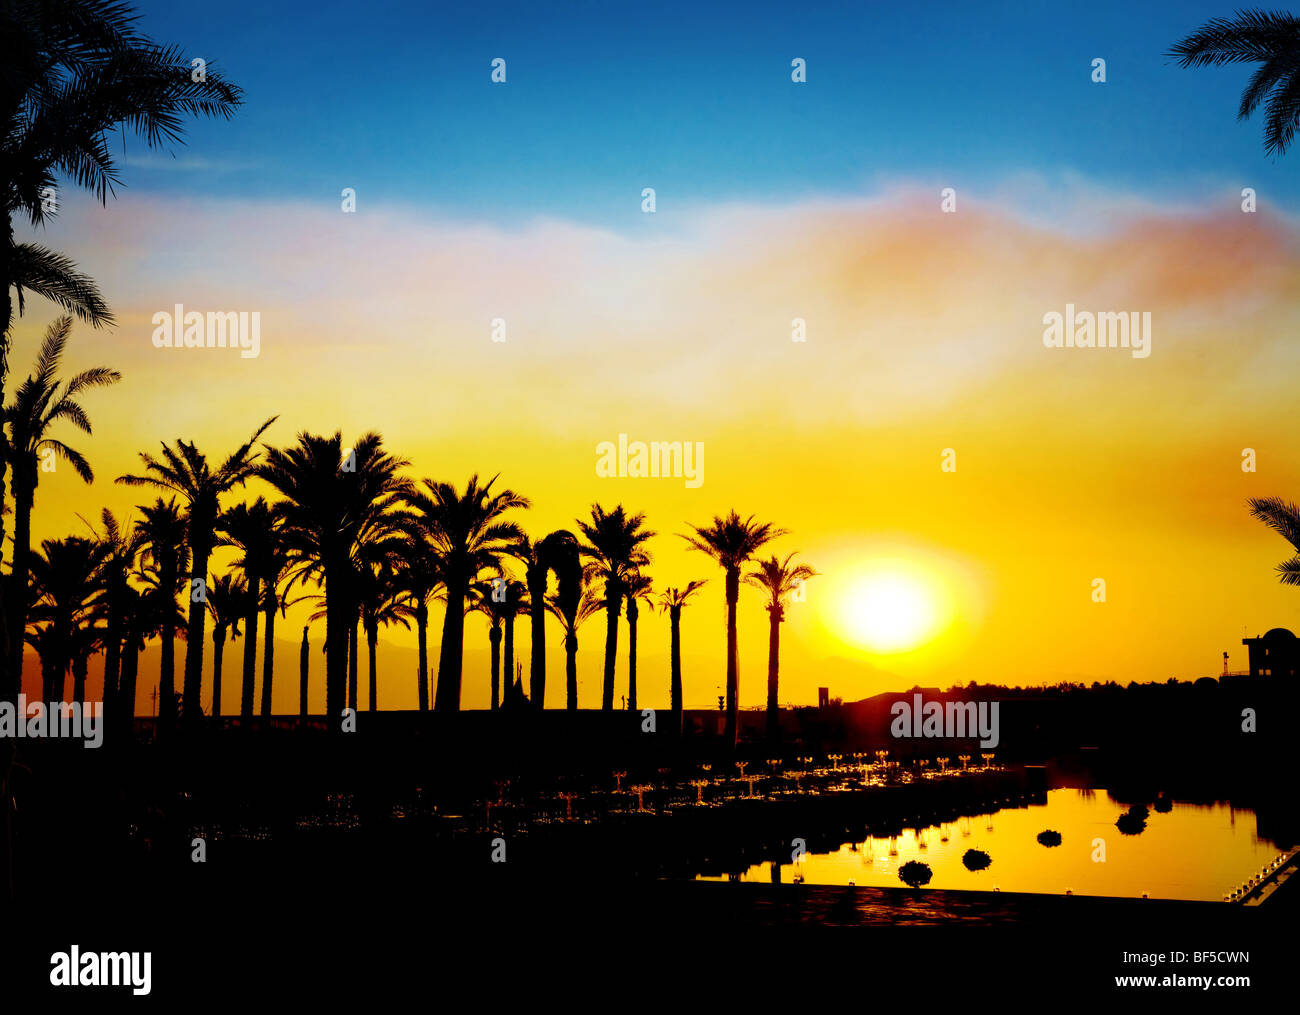 The silhouettes of palms on beautiful sunset background - Stock Image